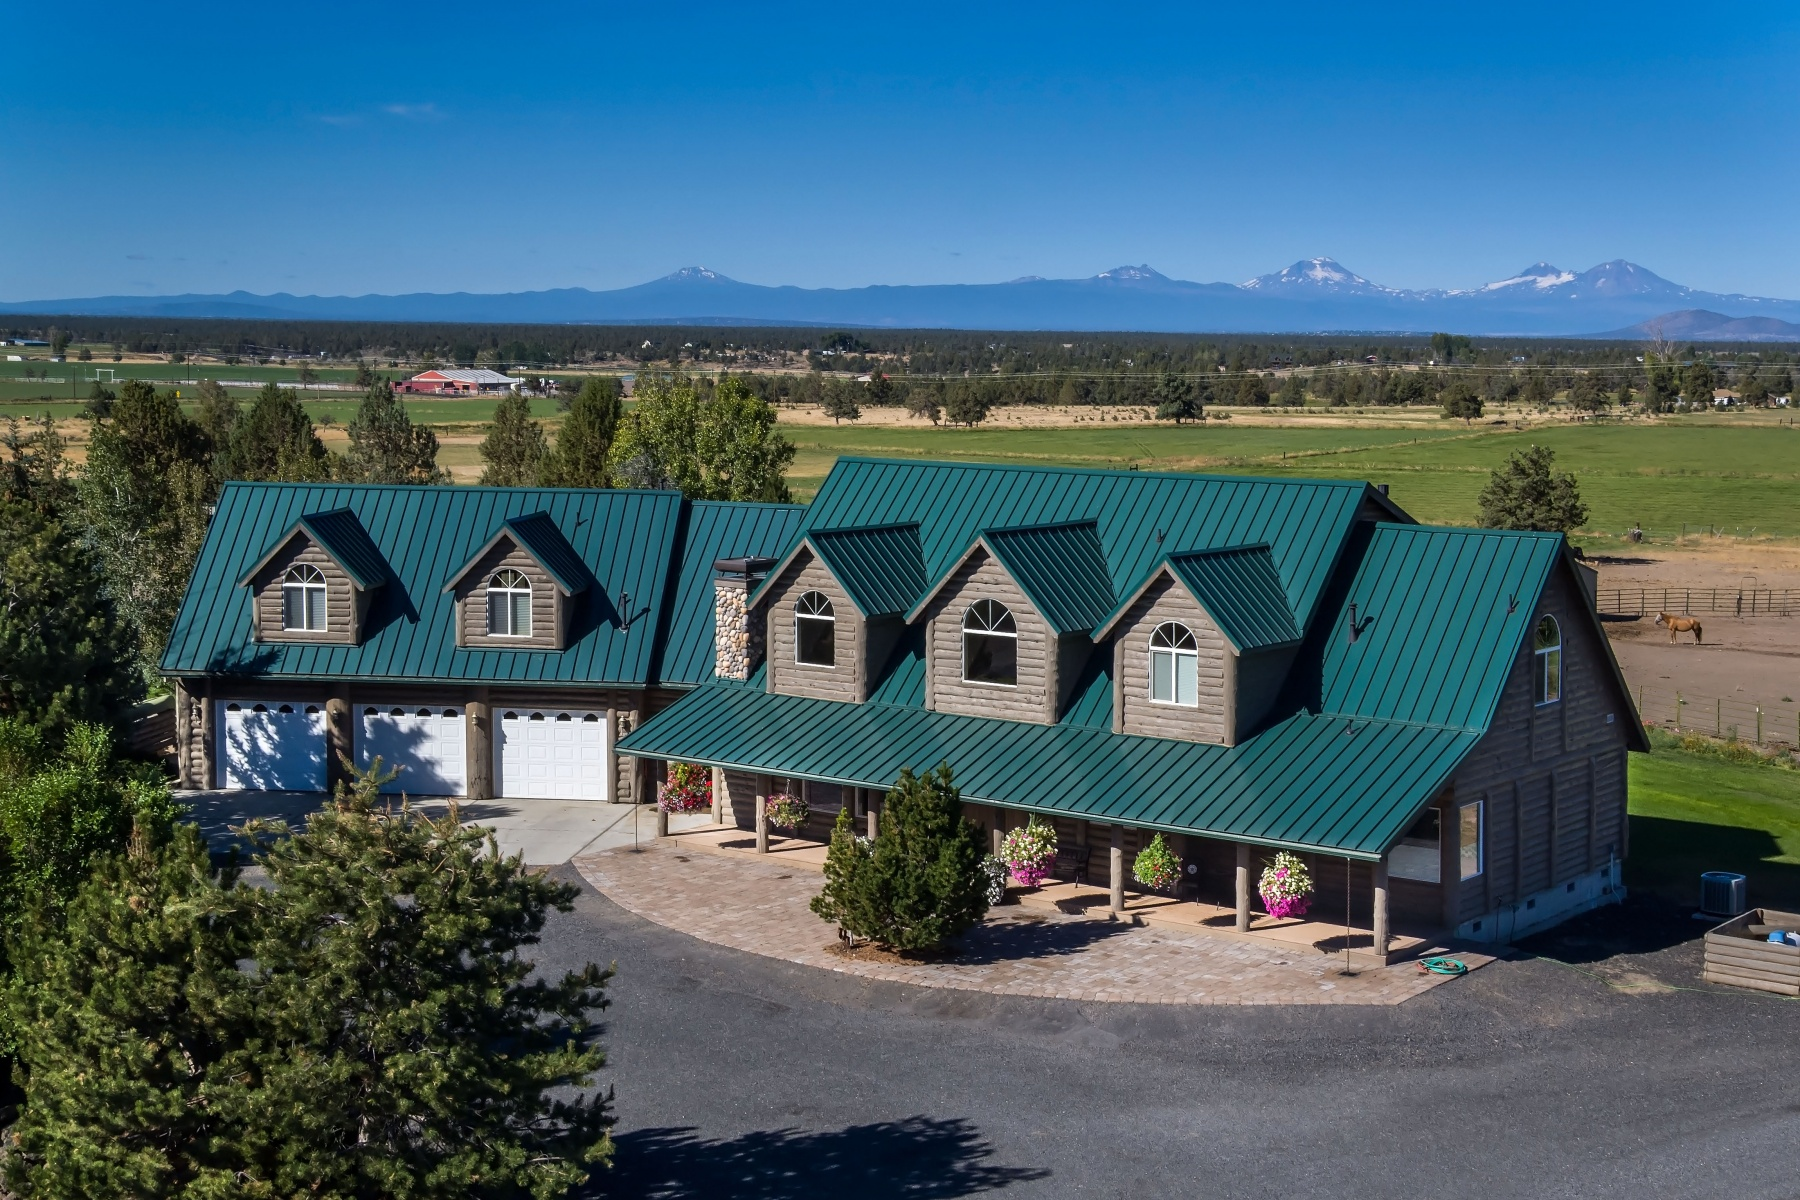 Single Family Home for Sale at Stoneybrook Ranch Powell Butte, OR 12865 SW Cornett Loop Powell Butte, Oregon, 97753 United States